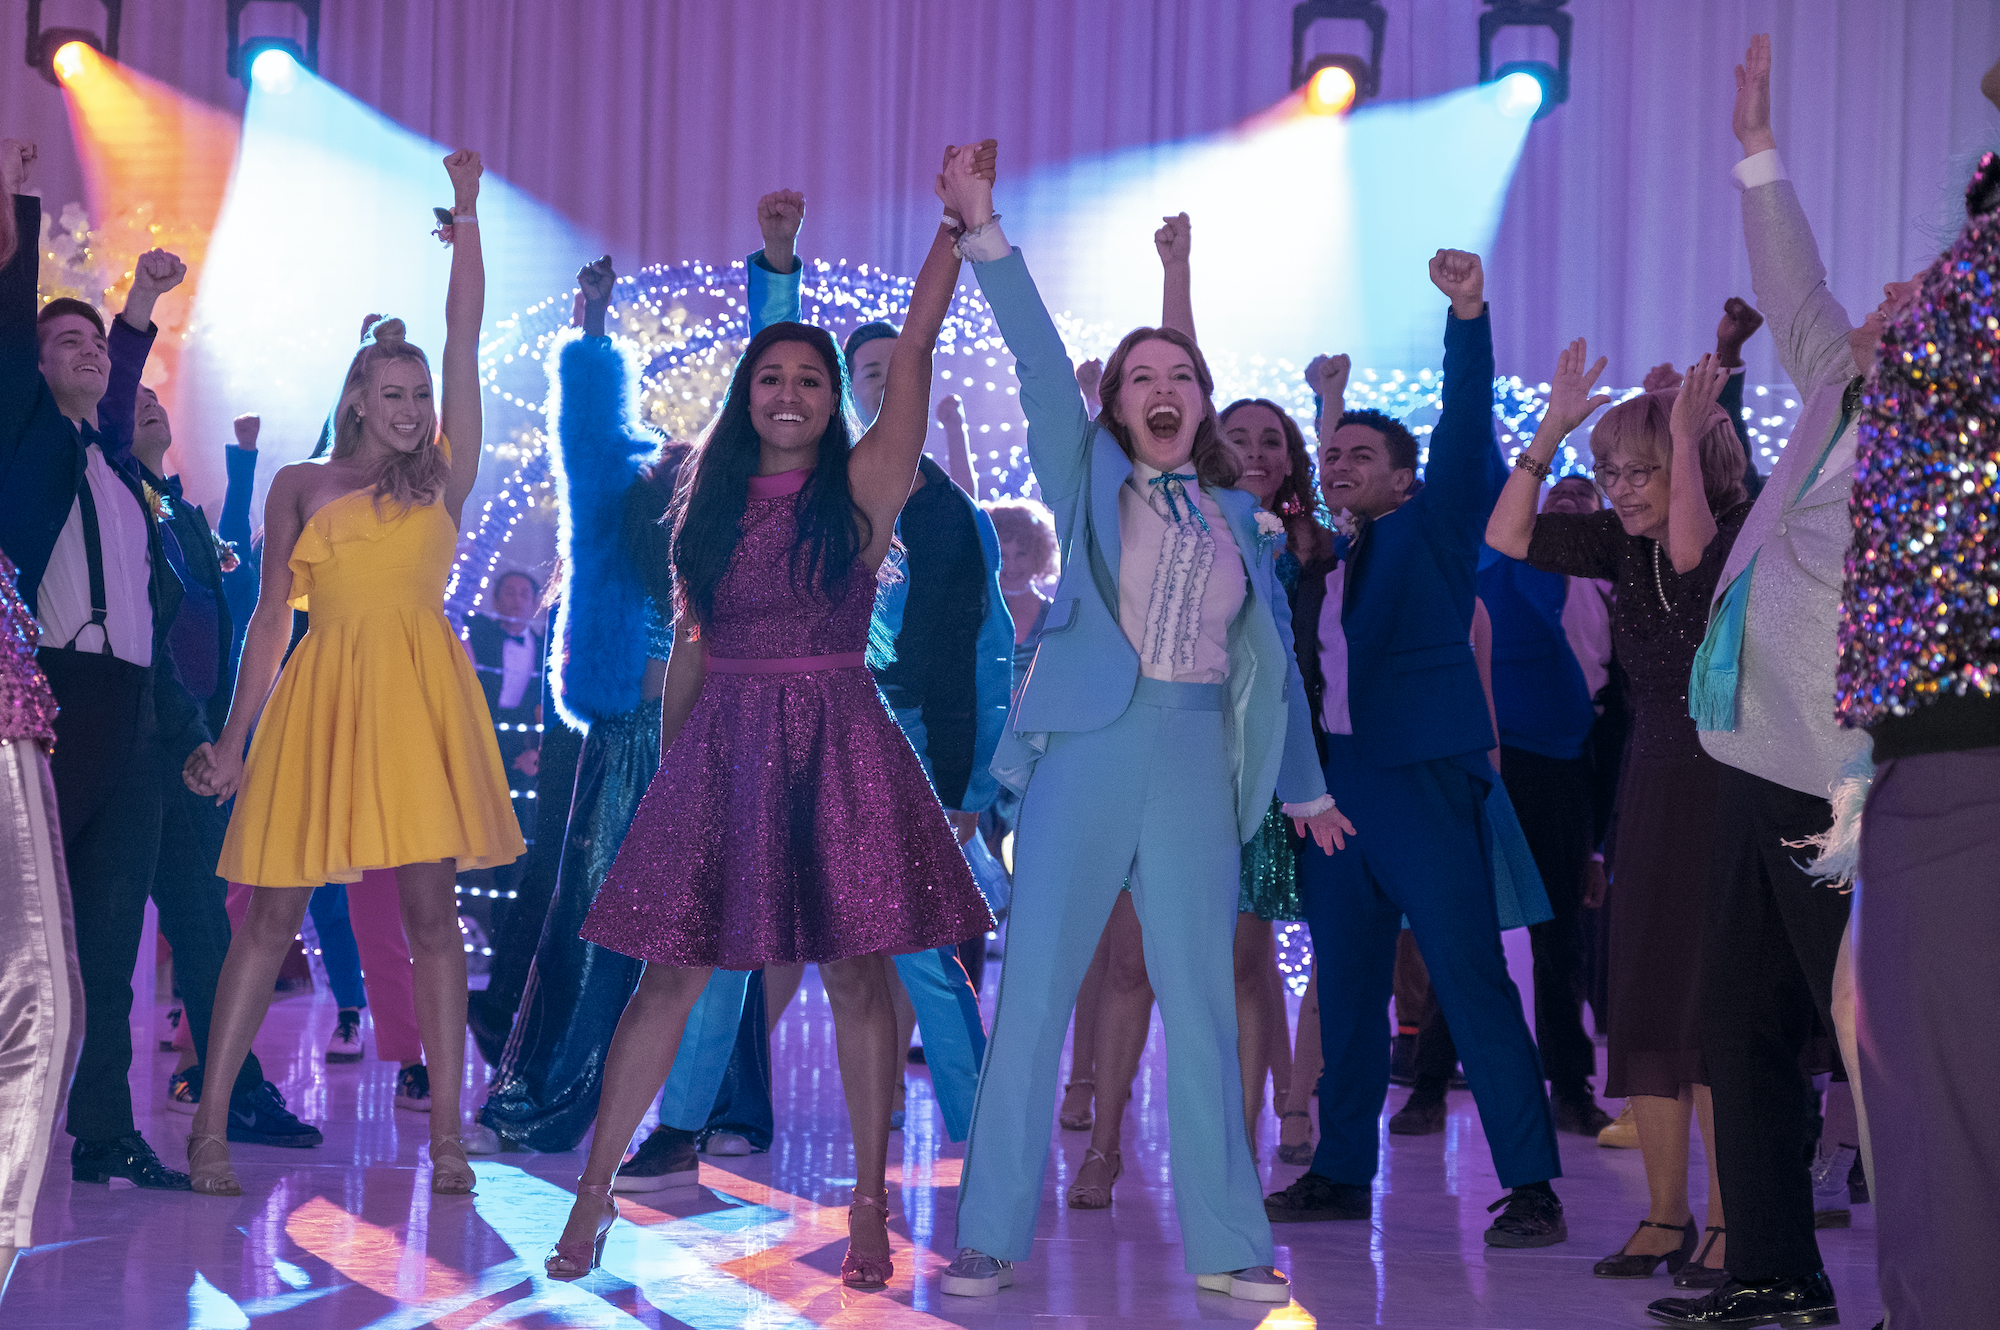 The Prom NICO GREETHAM as NICK, LOGAN RILEY HASSEL as KAYLEE, ARIANA DEBOSE as ALYSSA GREENE, ANDREW RANNELLS as TRENT OLIVER, JO ELLEN PELLMAN as EMMA, SOFIA DELER as SHELBY, NATHANIEL POTVIN as KEVIN, TRACEY ULLMAN as VERA, JAMES CORDEN as BARRY GLICKMAN in THE PROM.